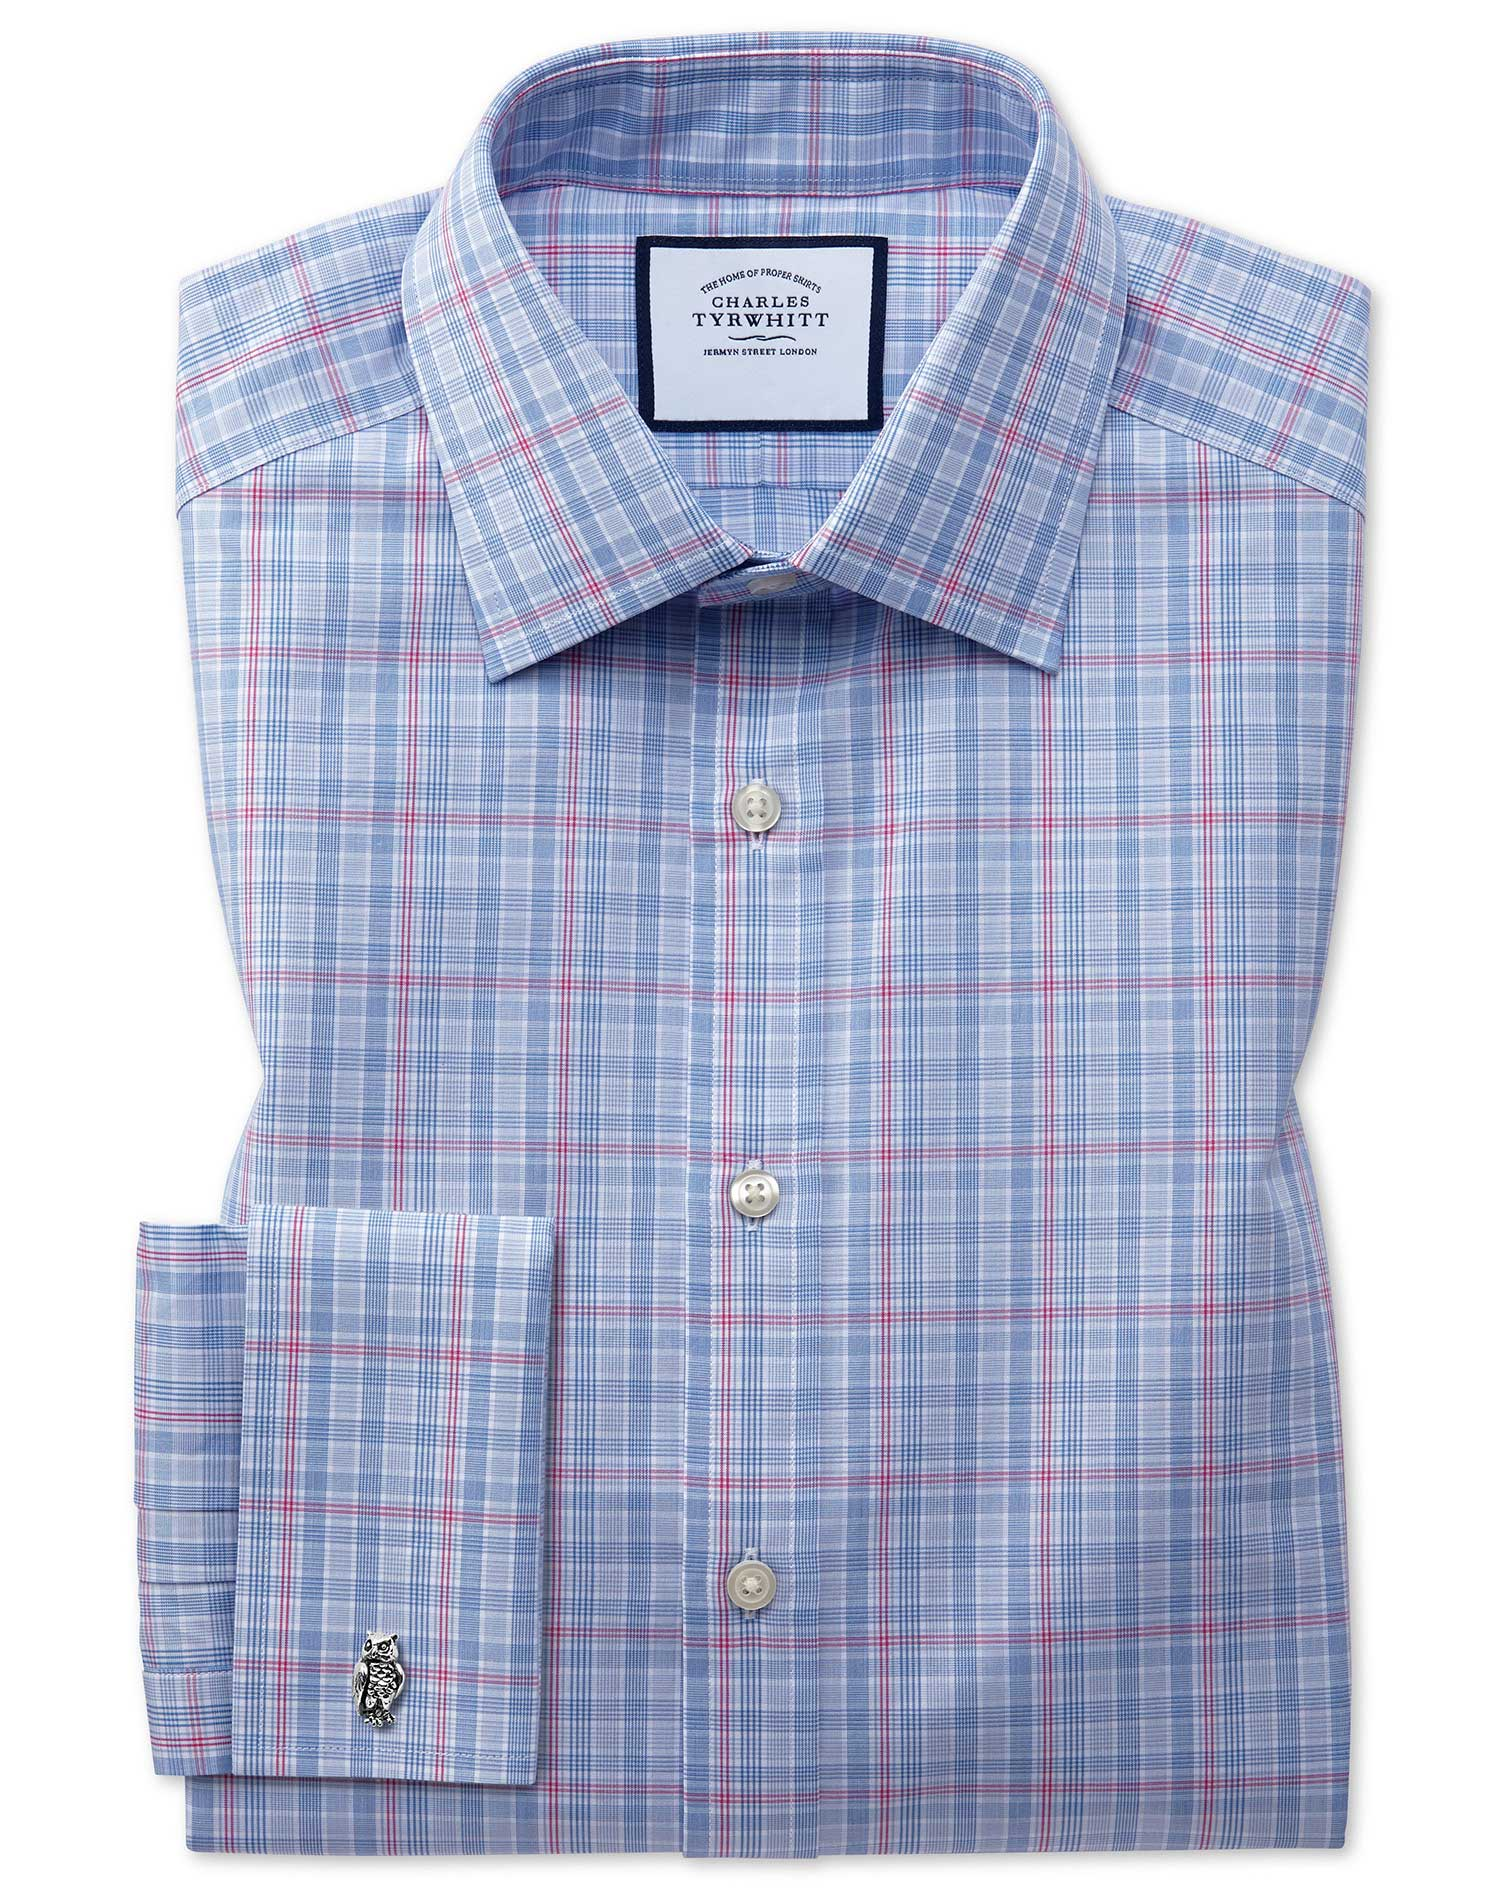 Classic Fit Blue and Pink Prince Of Wales Check Cotton Formal Shirt Double Cuff Size 16/33 by Charle